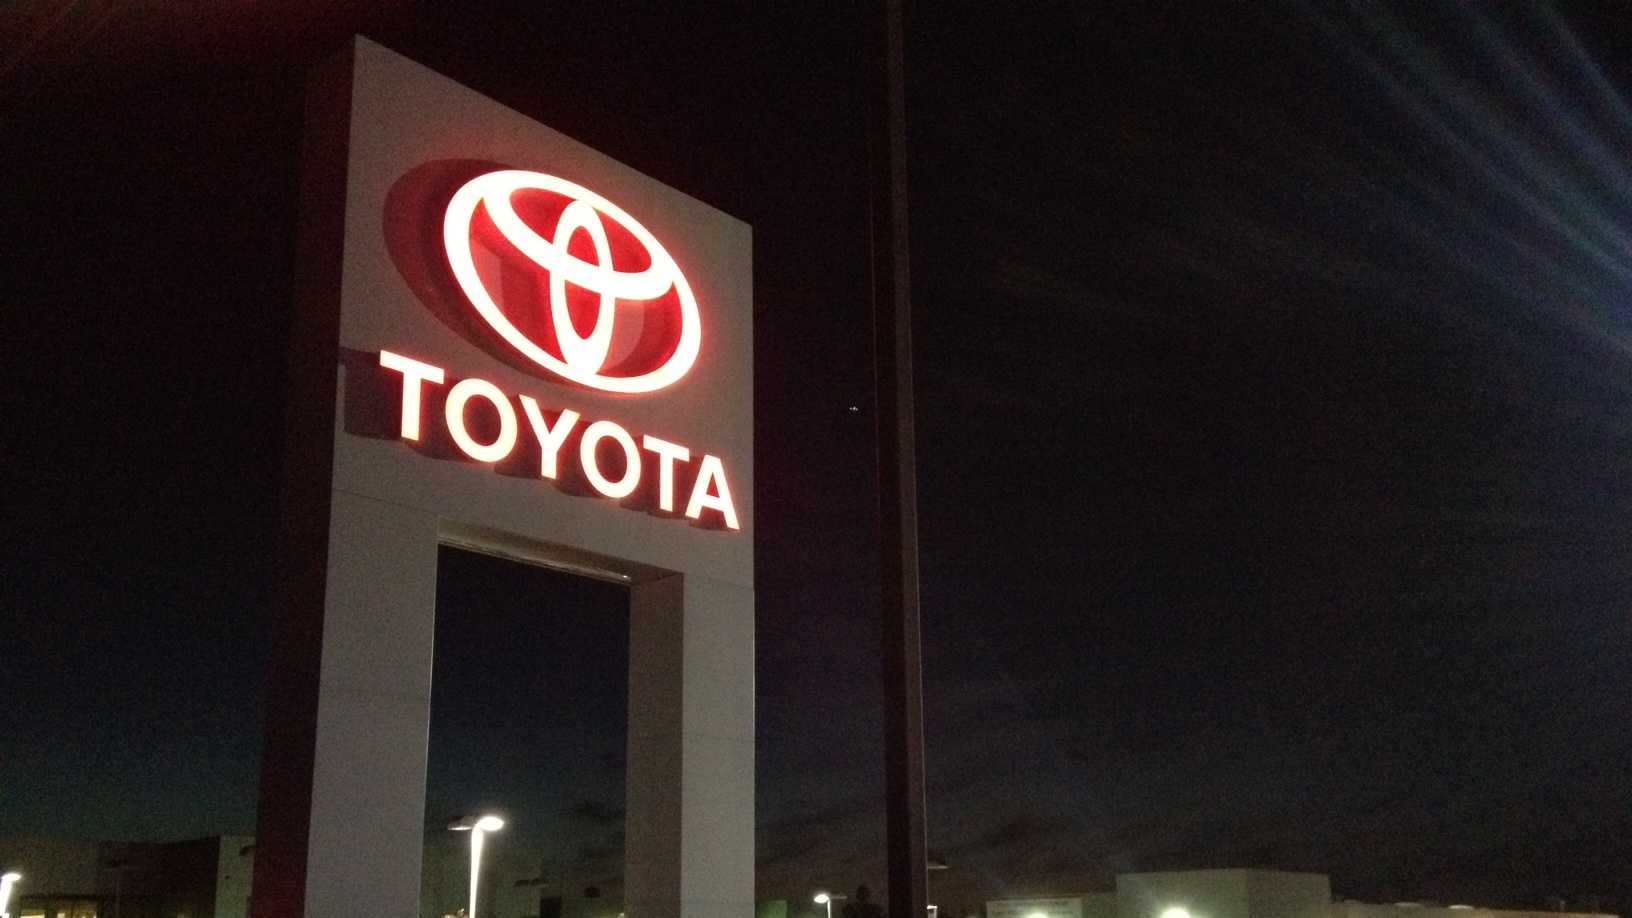 Toyota dealership (Oct. 10, 2012)